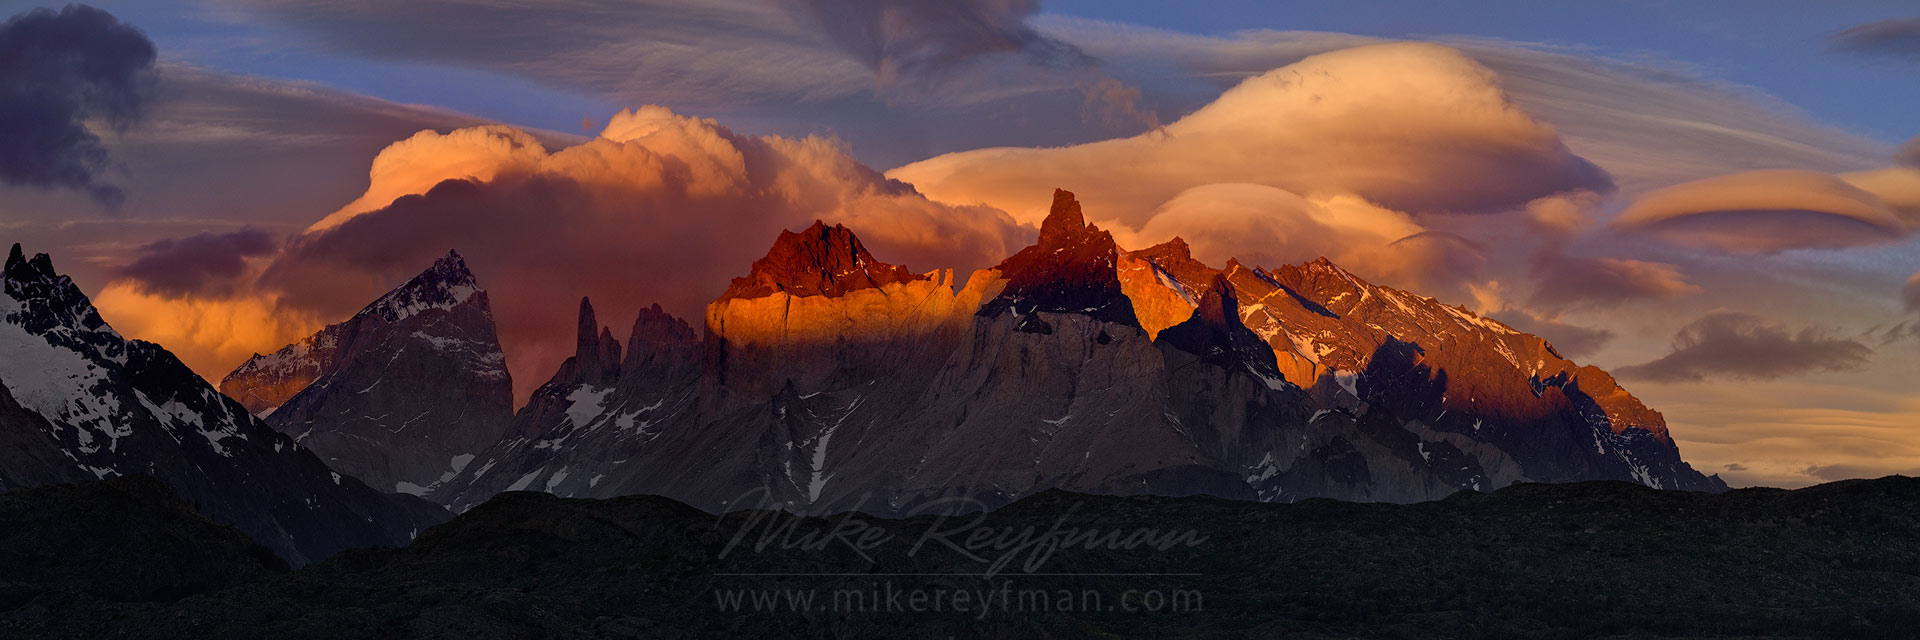 Dramatic sunset over Cordillera del Paine. Torres del Paine National Park, Ultima Esperanza Province, Magallanes and Antartica Chilena Region XII, Patagonia, Chile. - Torres-Del-Paine-National-Park-Patagonia-Chile - Mike Reyfman Photography